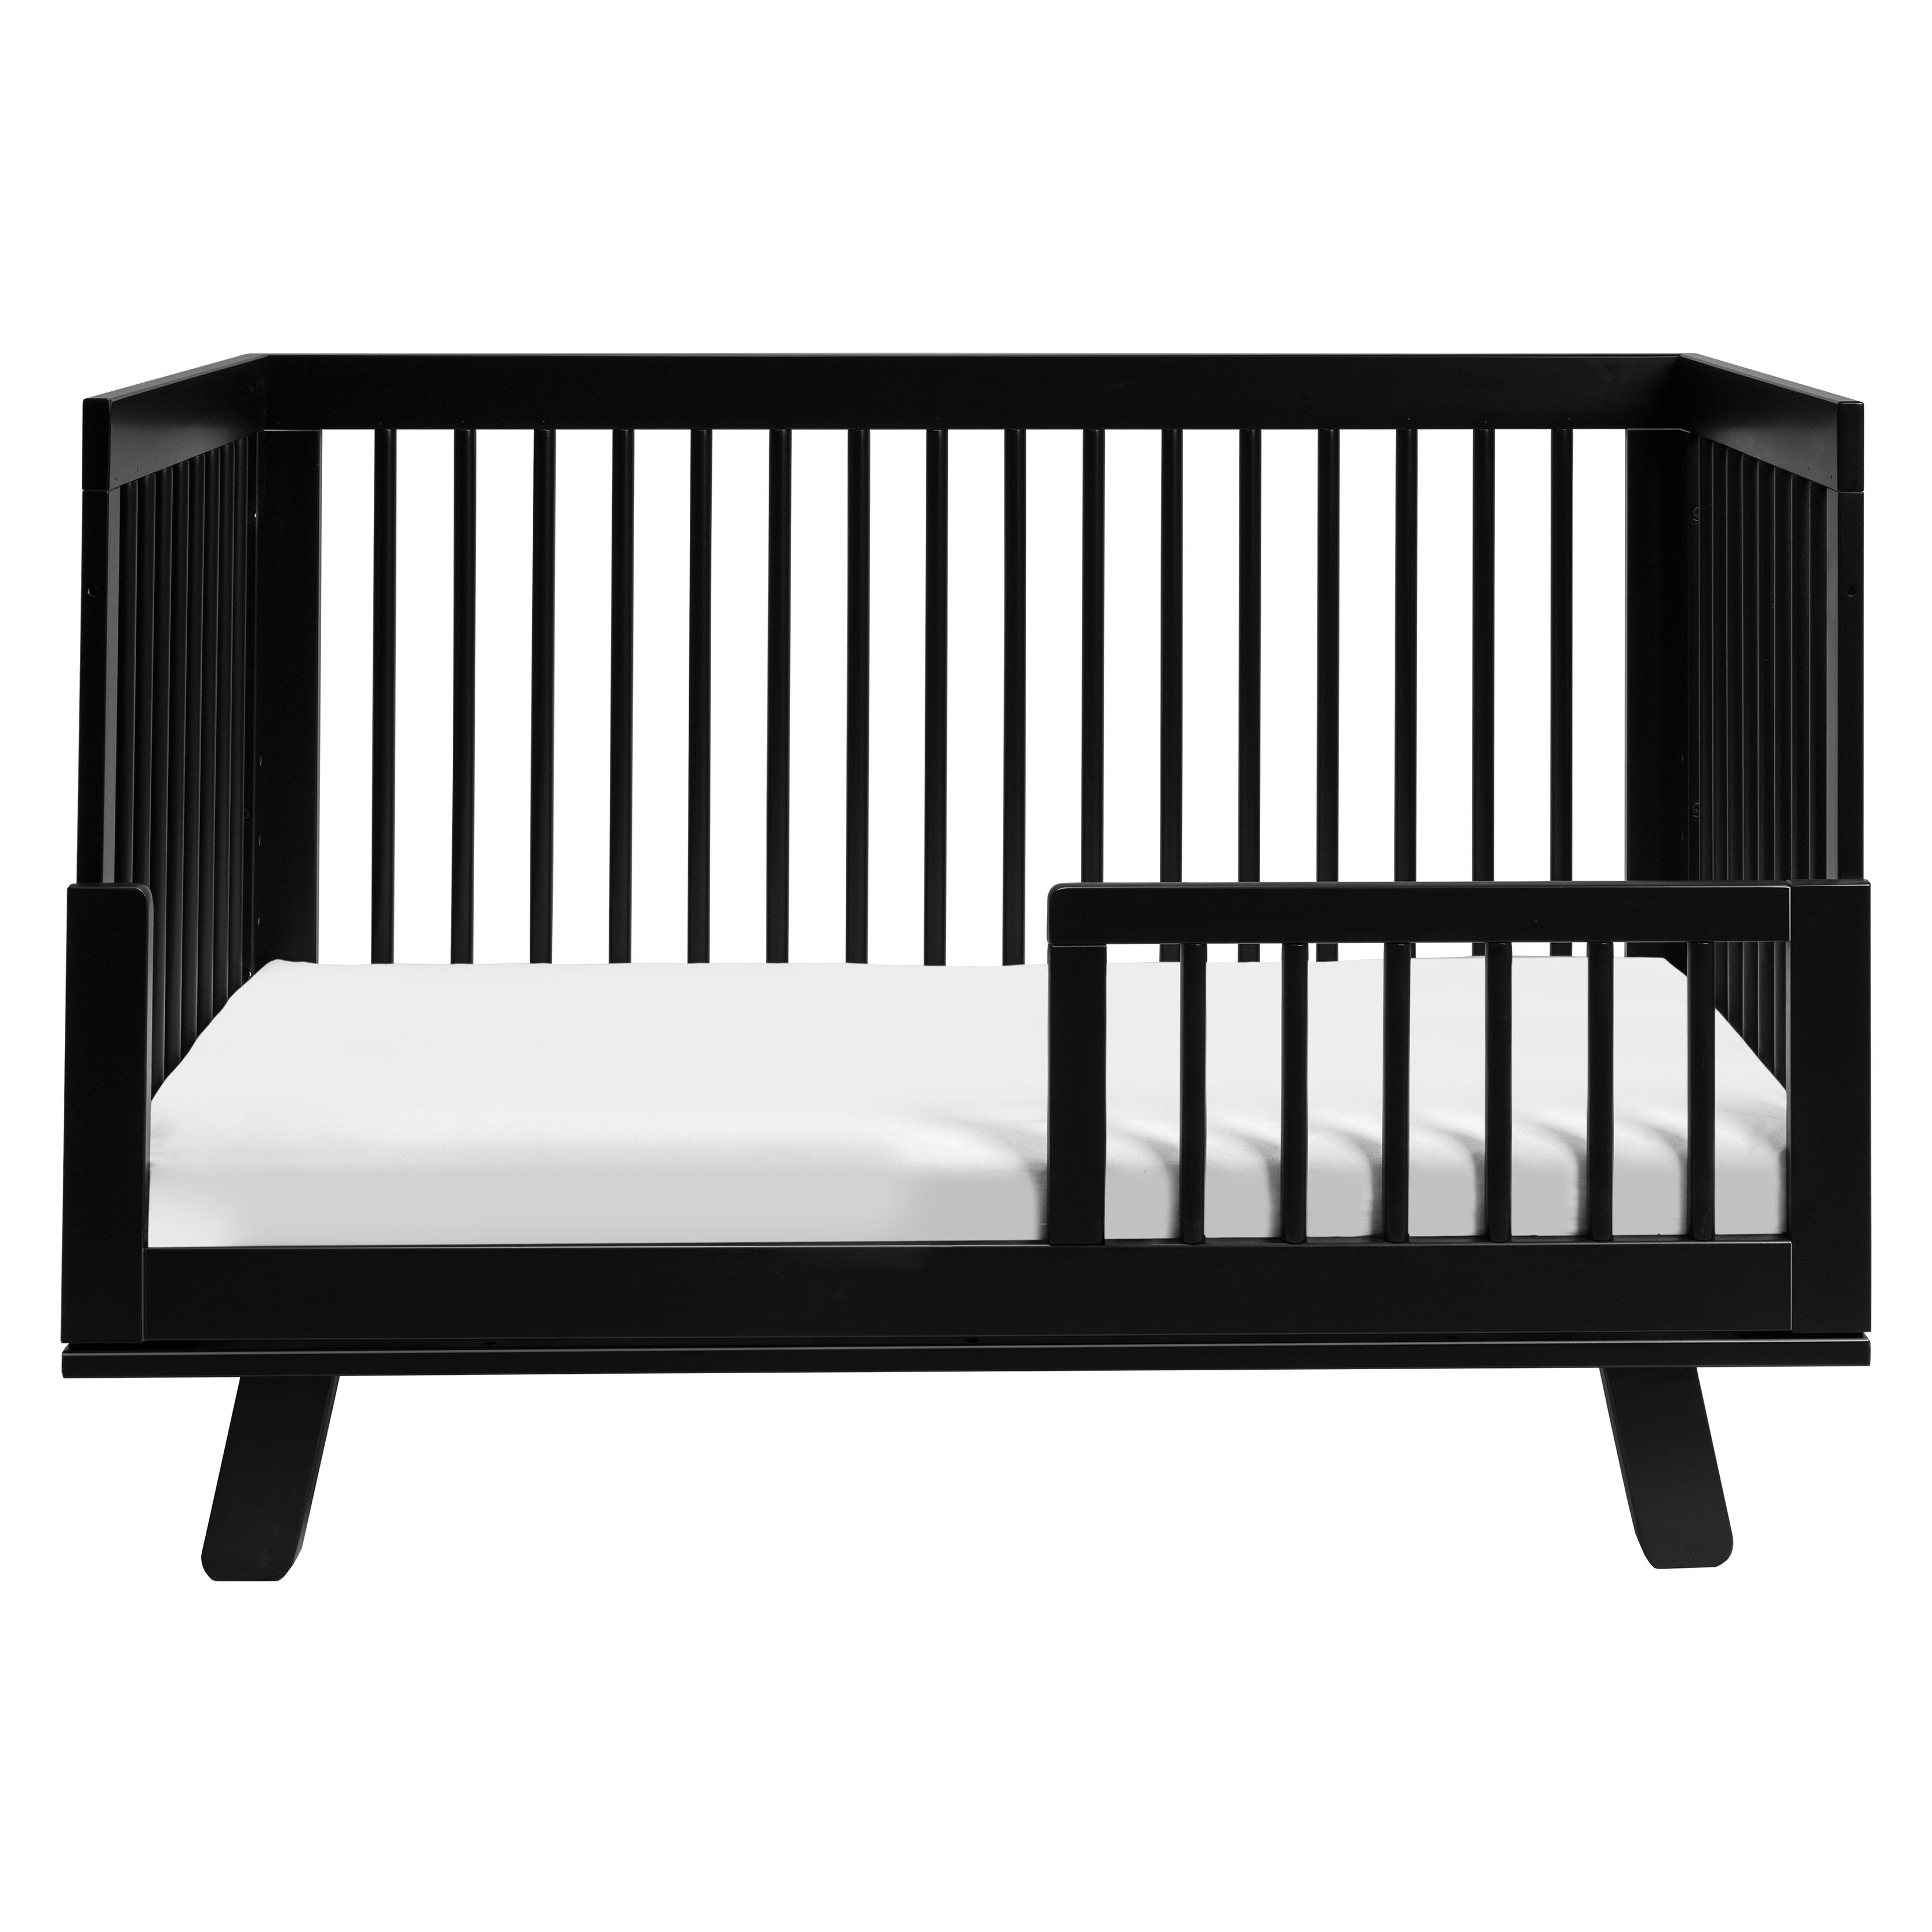 Hudson 3-in-1 Convertible Crib with Toddler Bed Conversion Kit - Black - Project Nursery